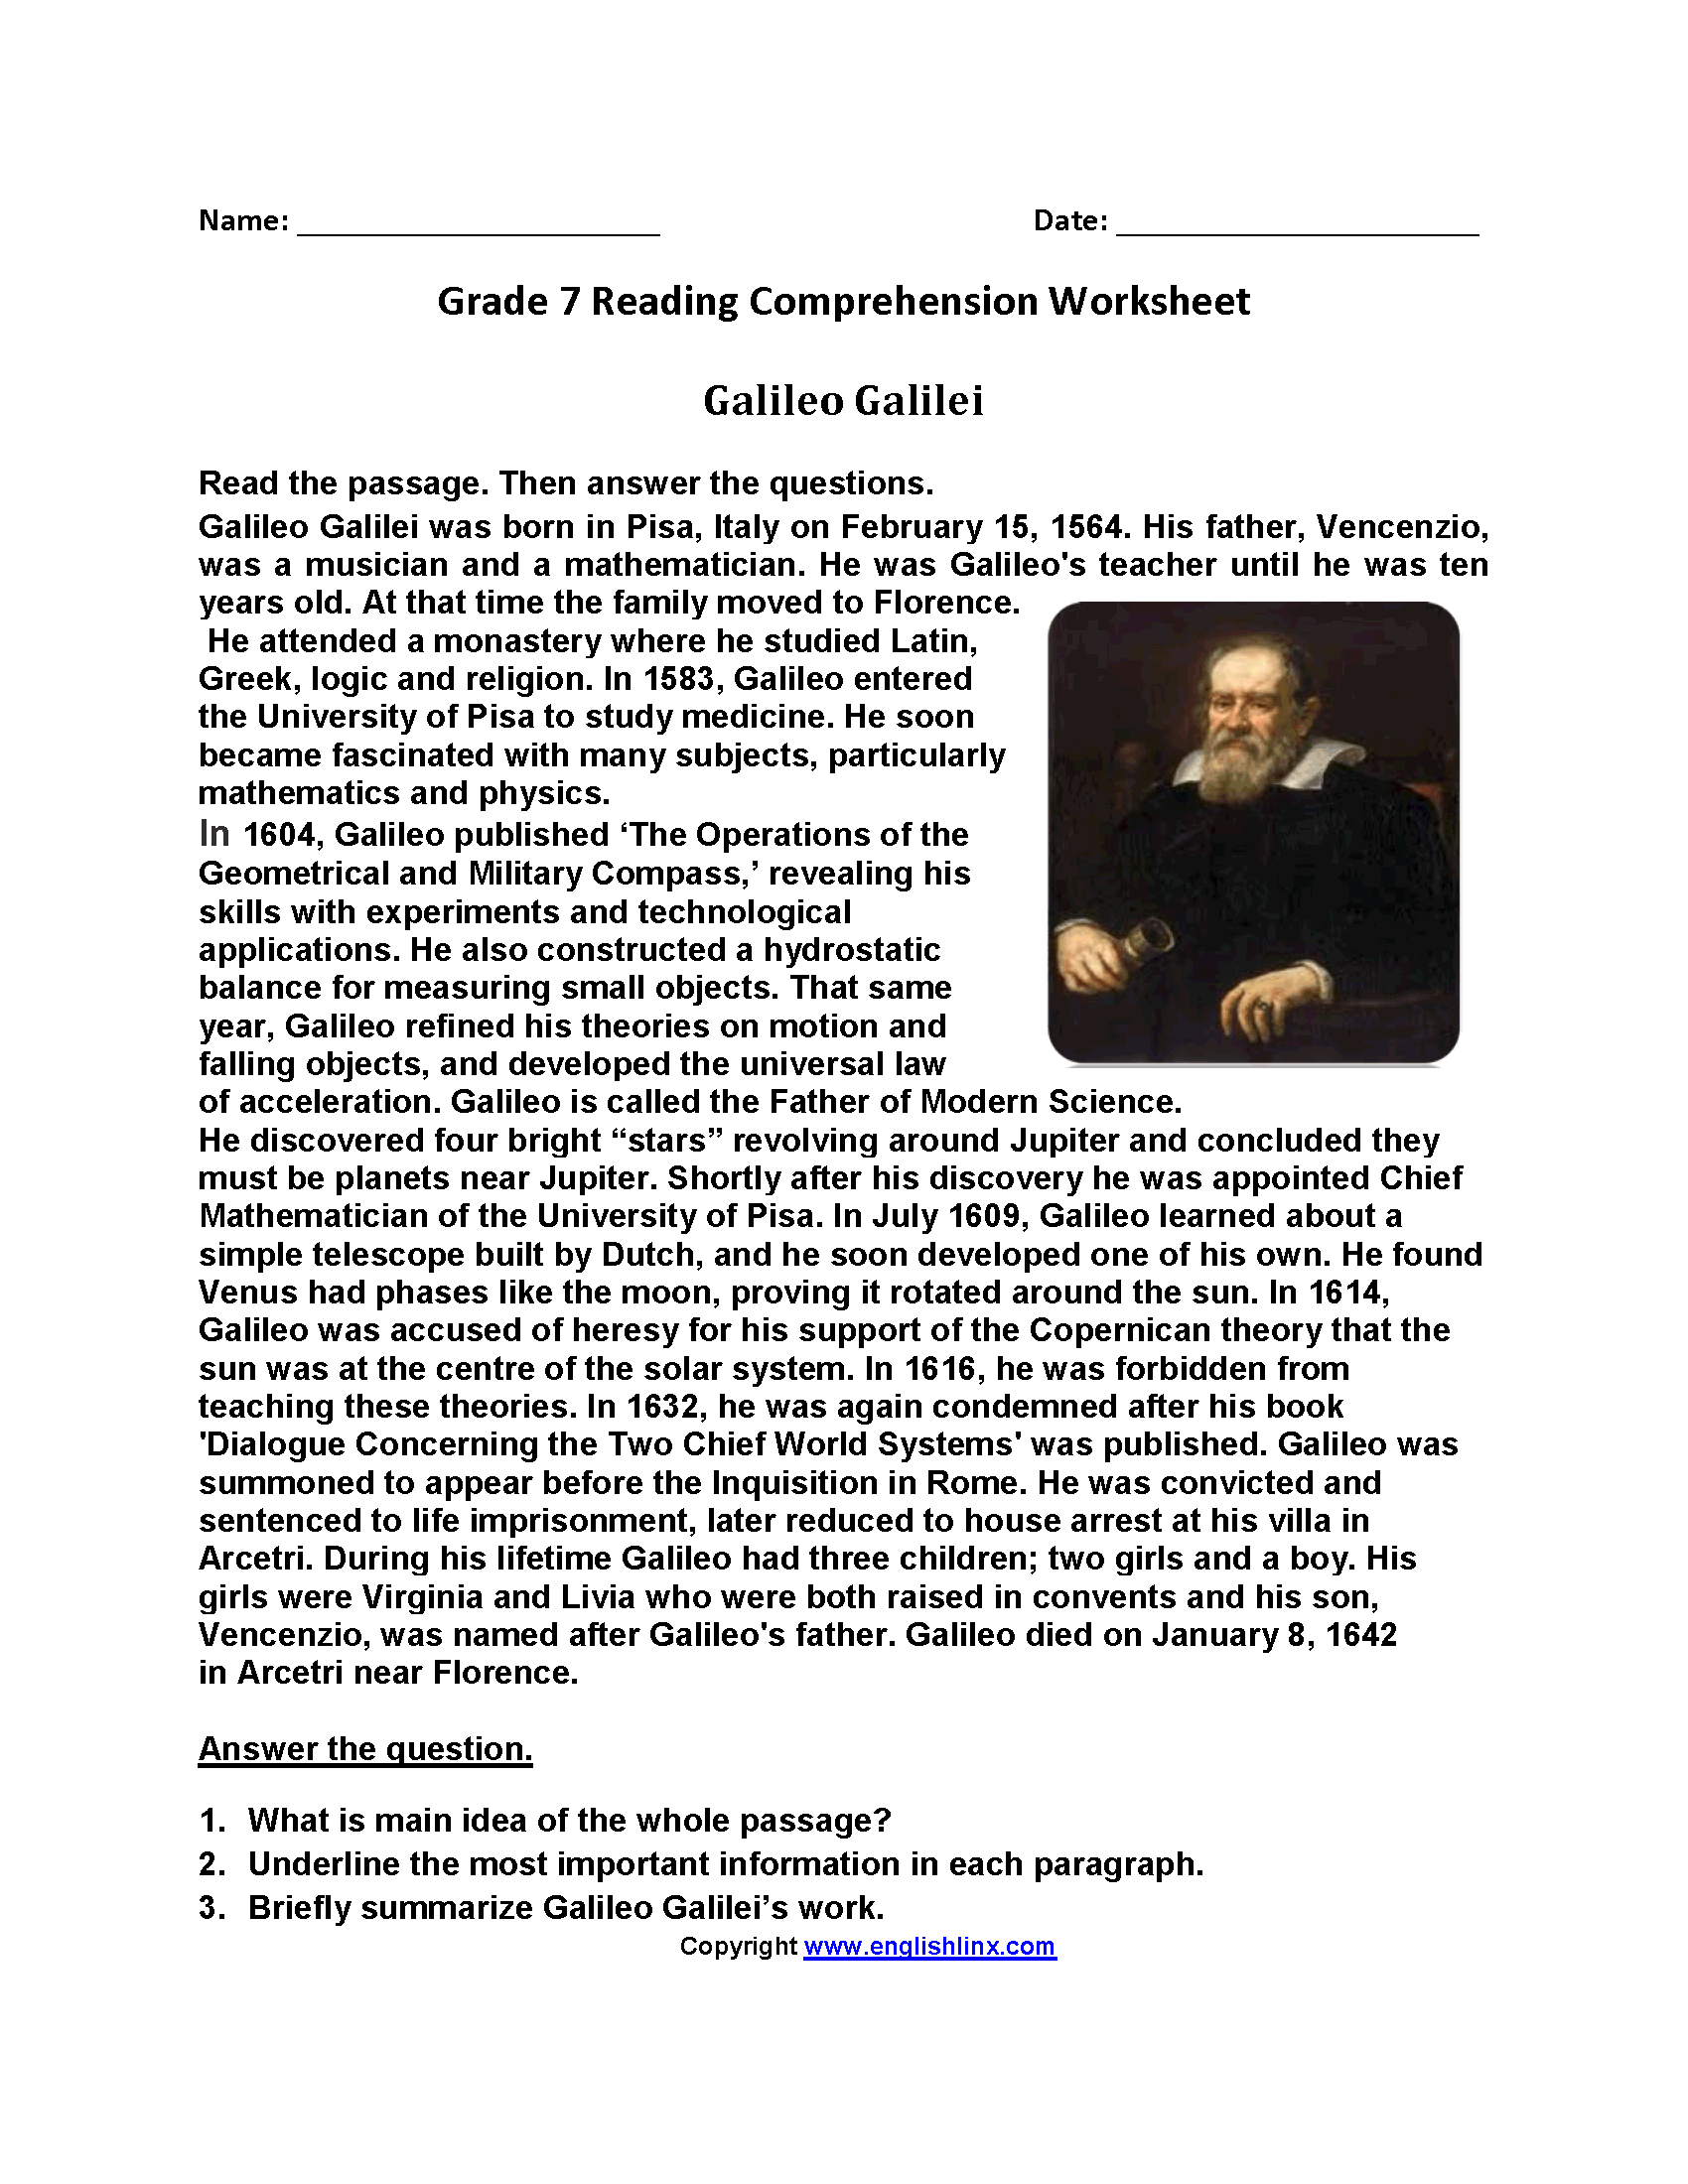 Galileo Galili Seventh Grade Reading Worksheets